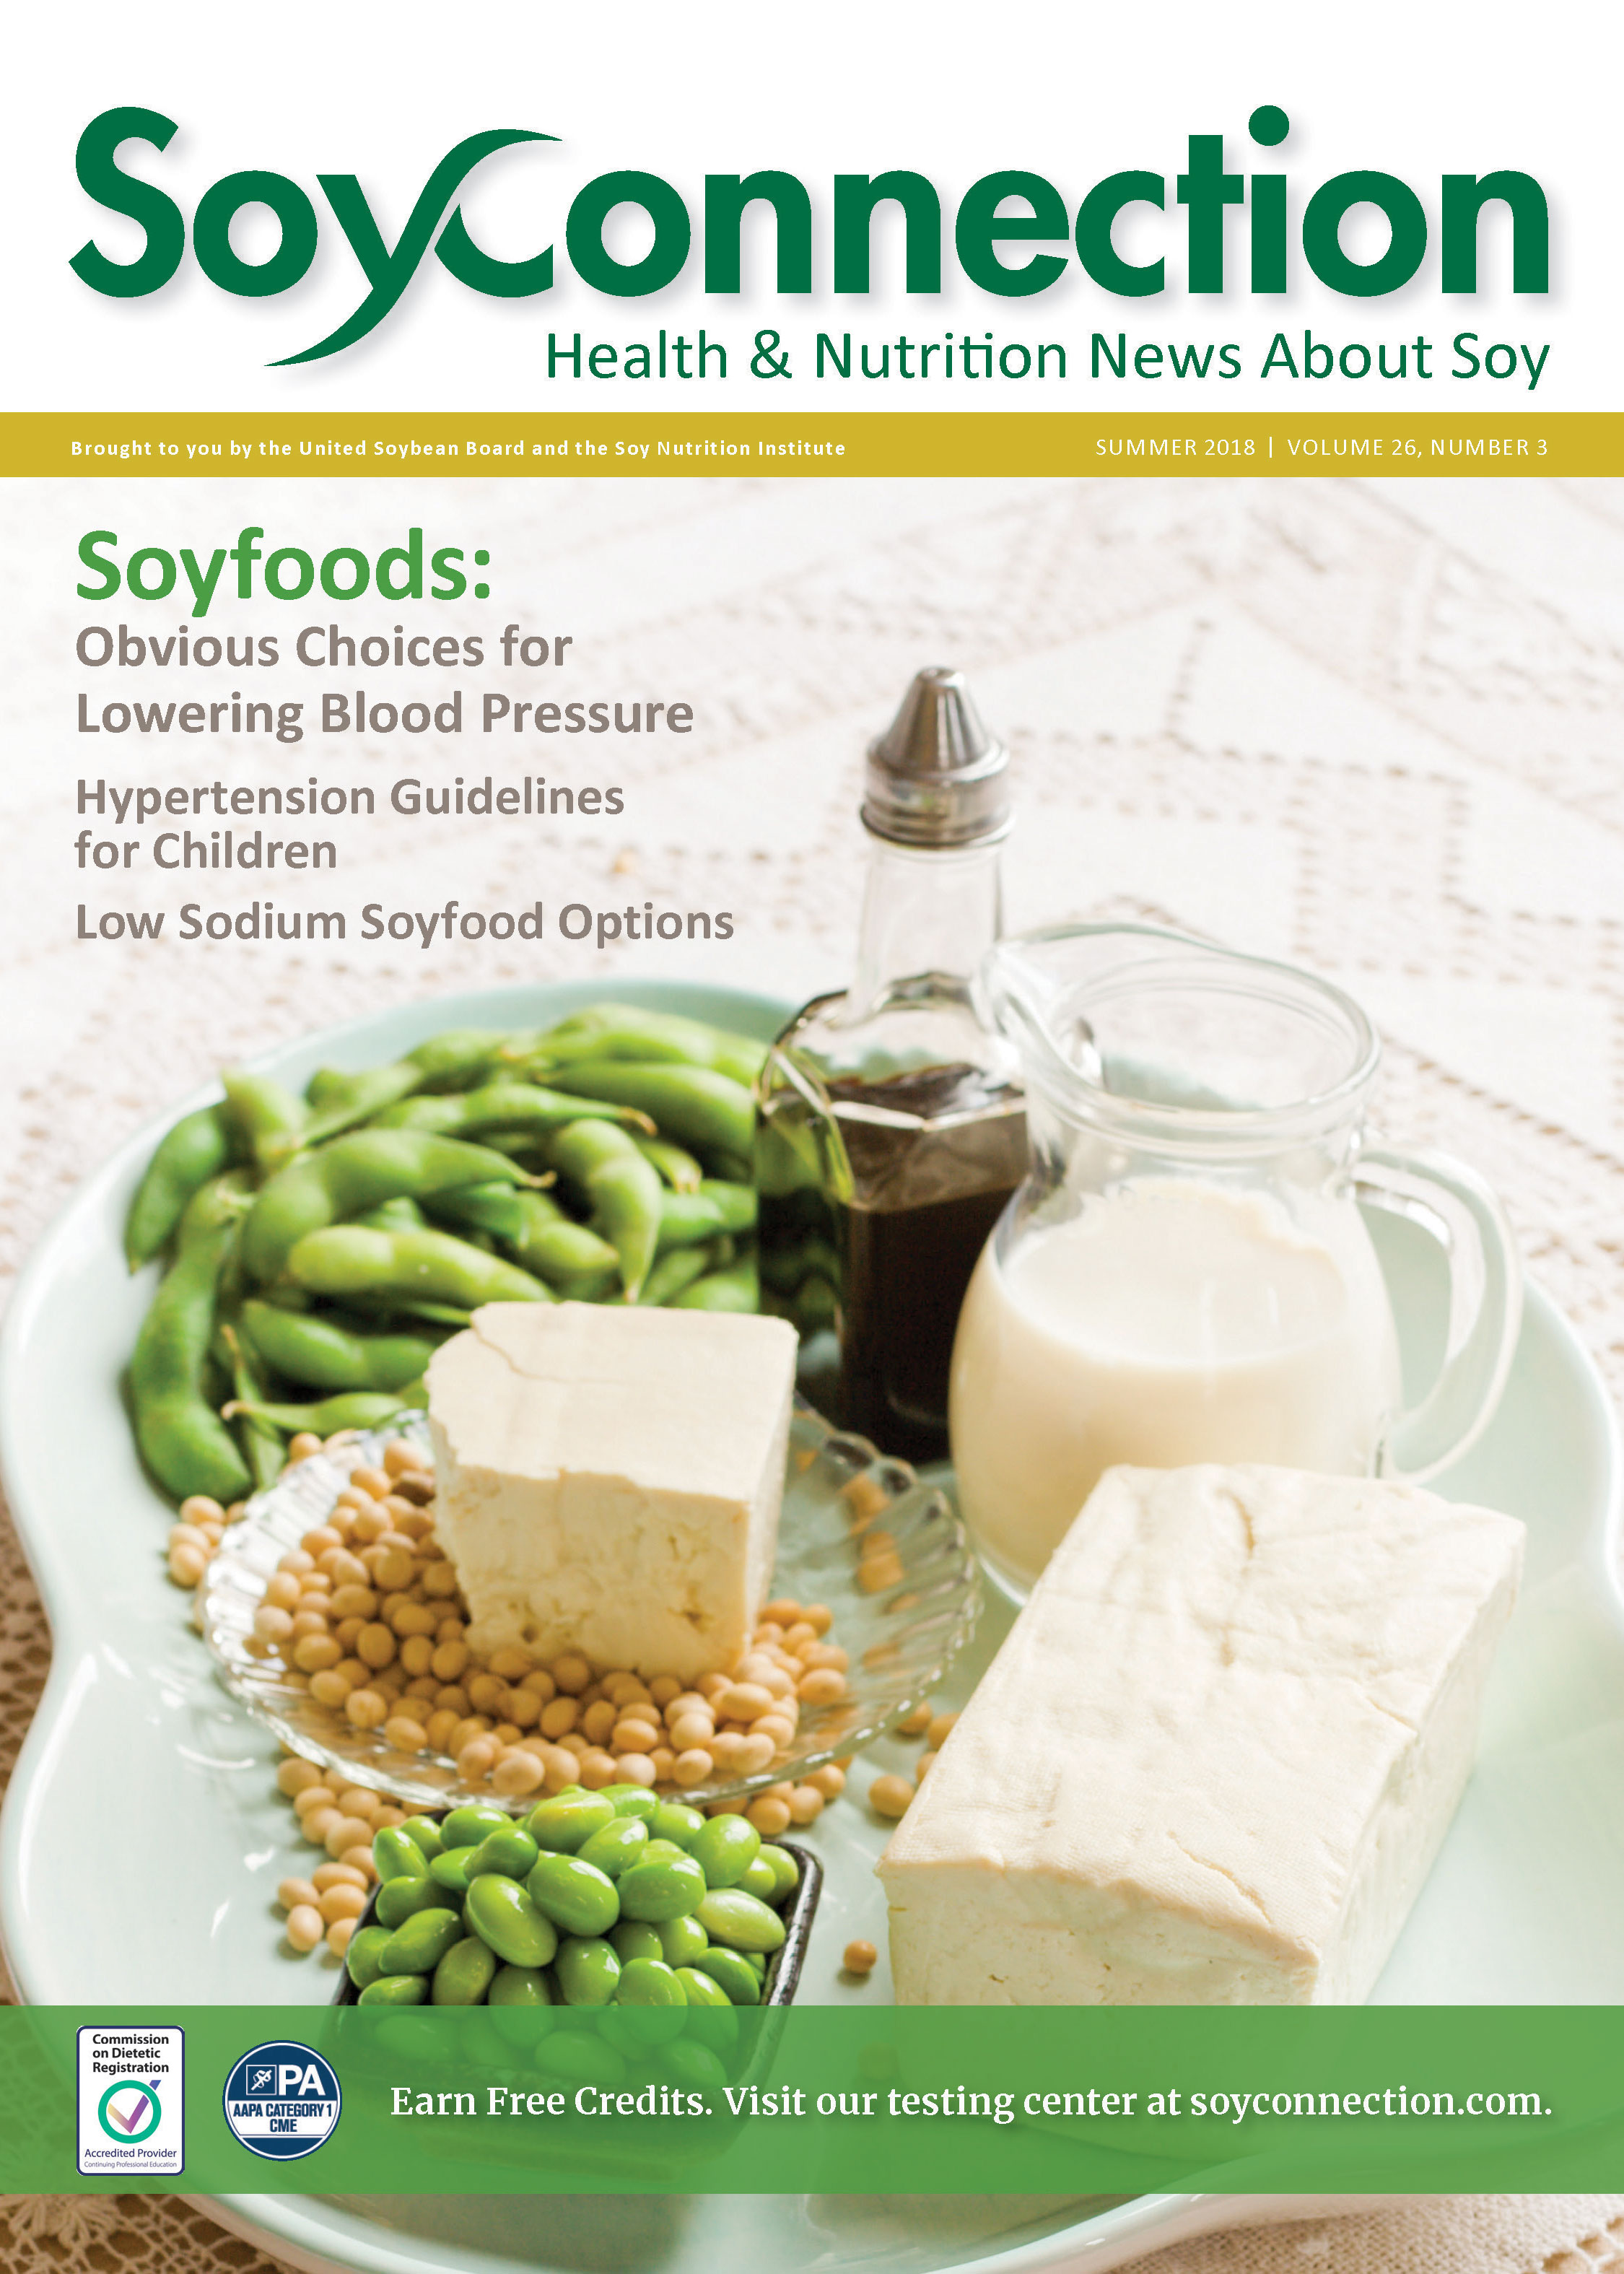 Soy Connection Lowering Blood Pressure